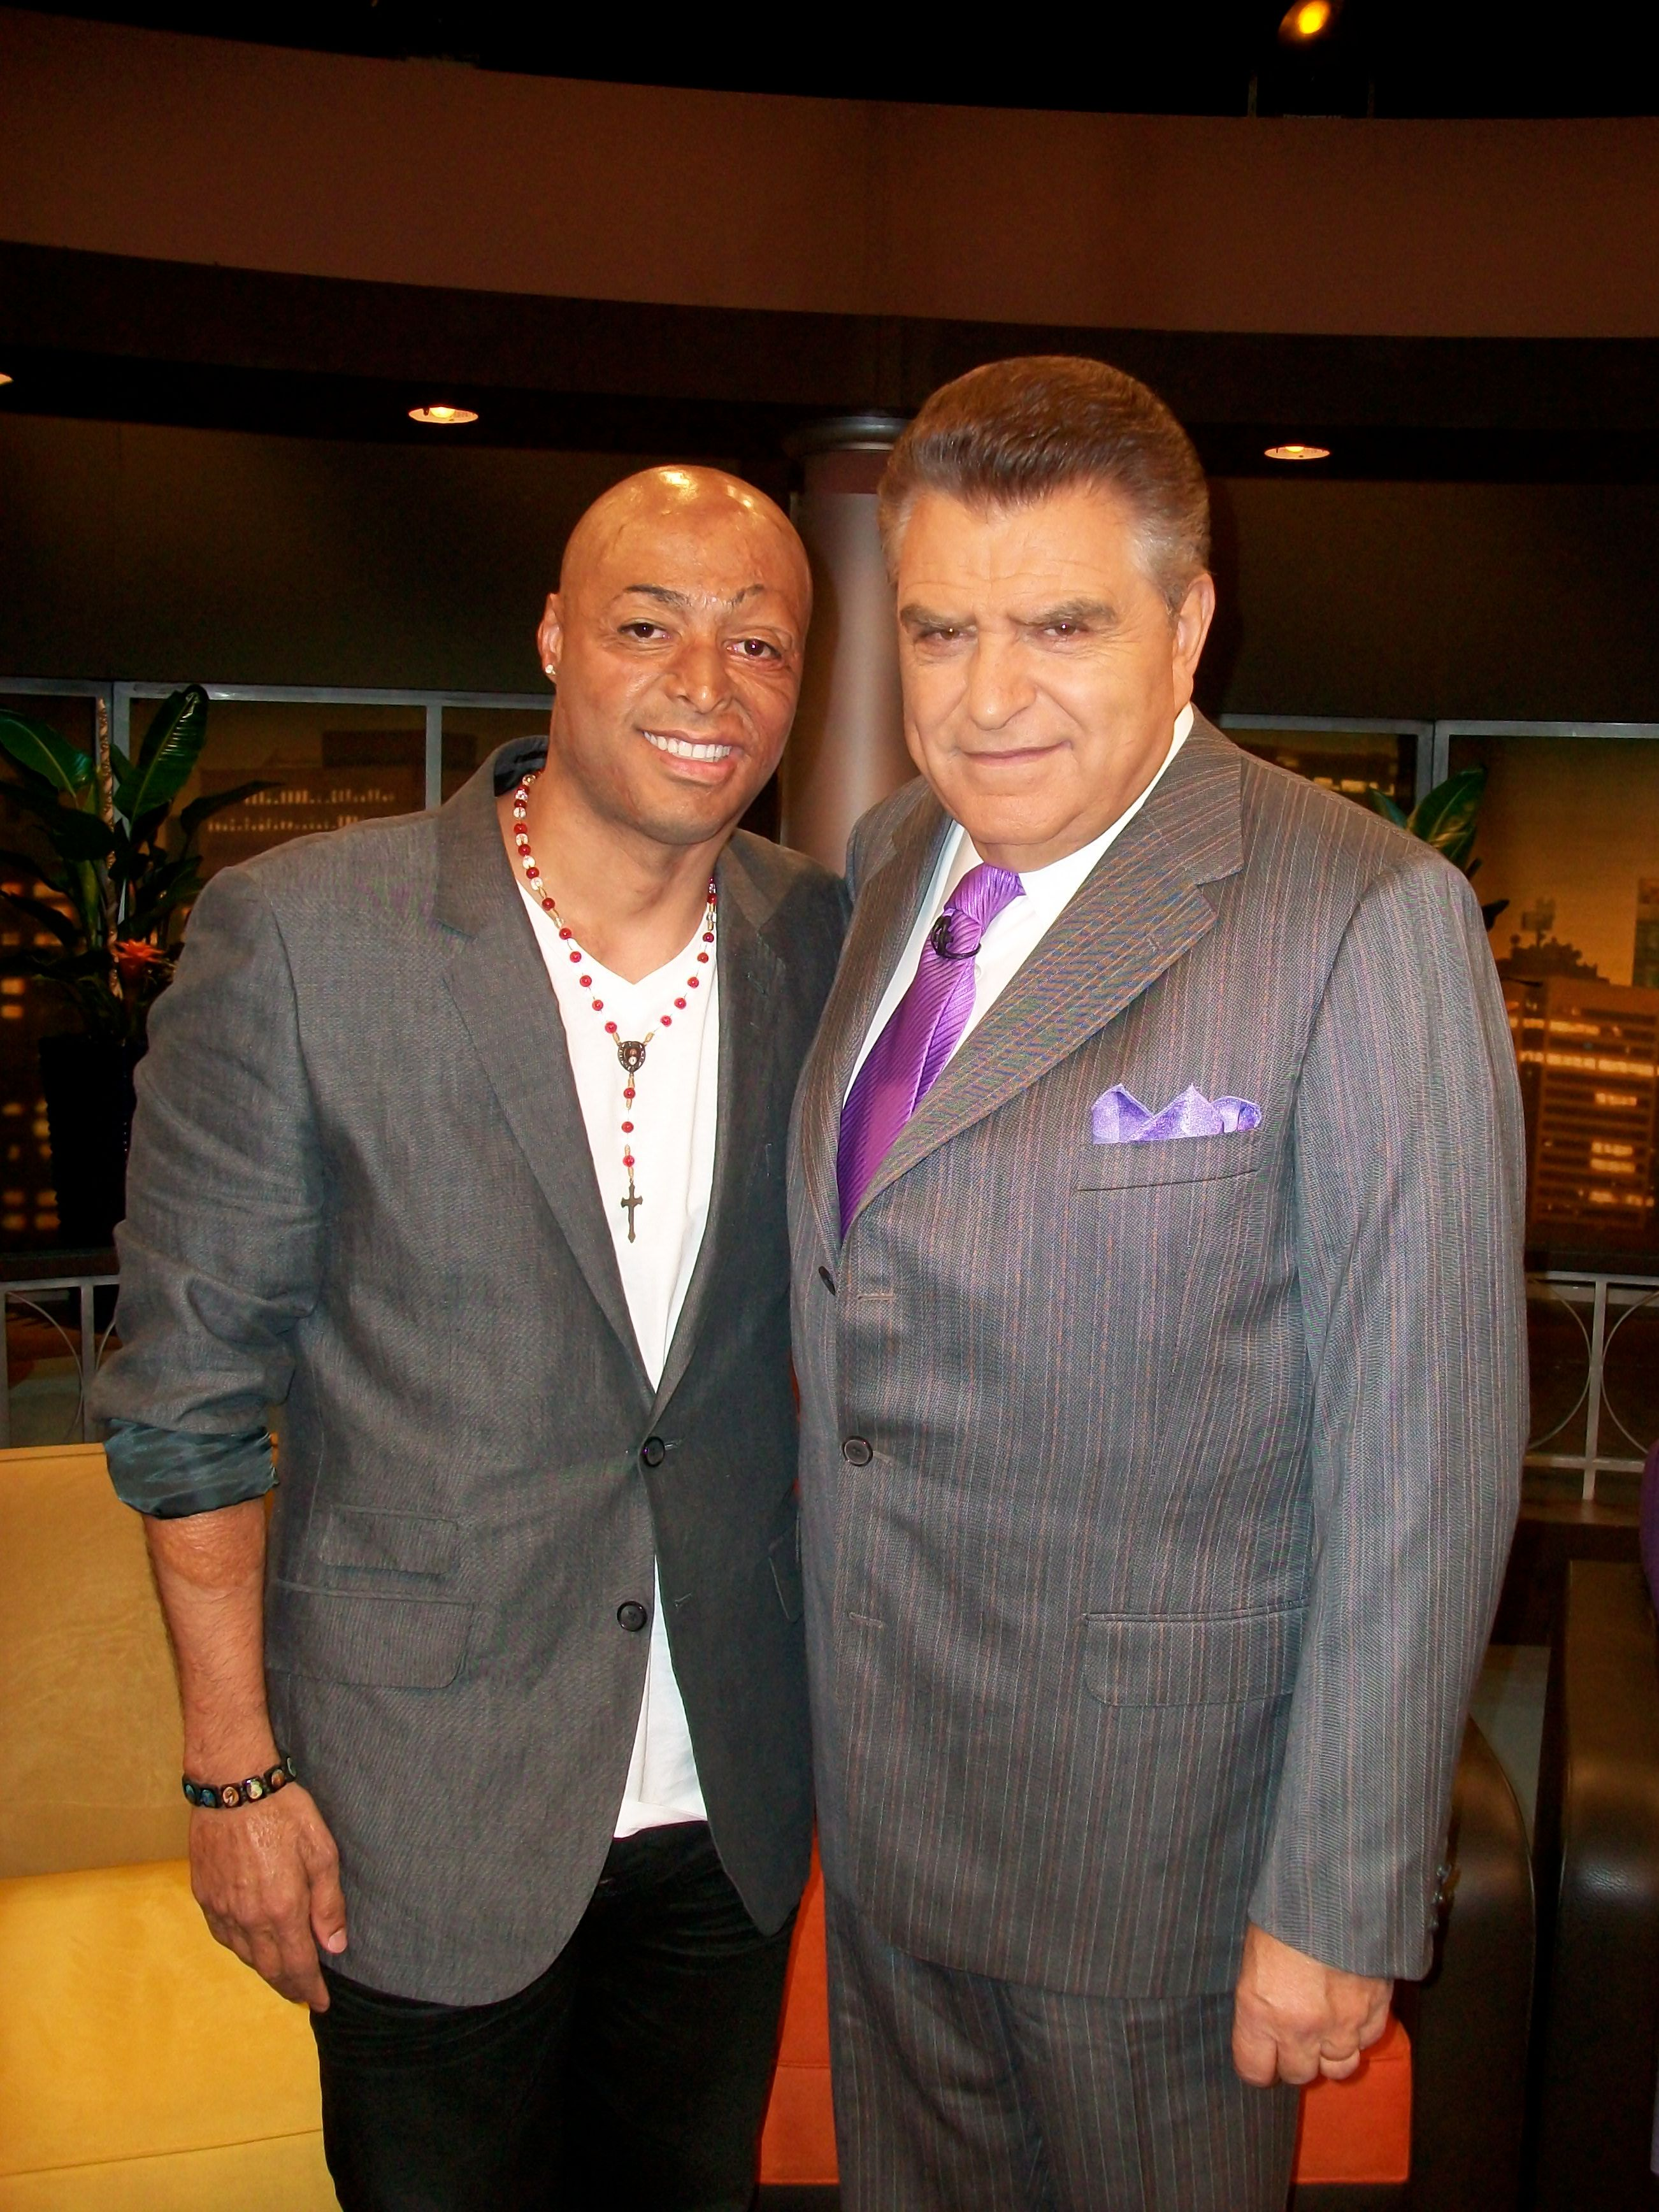 Don Francisco y JR Martienz.jpg